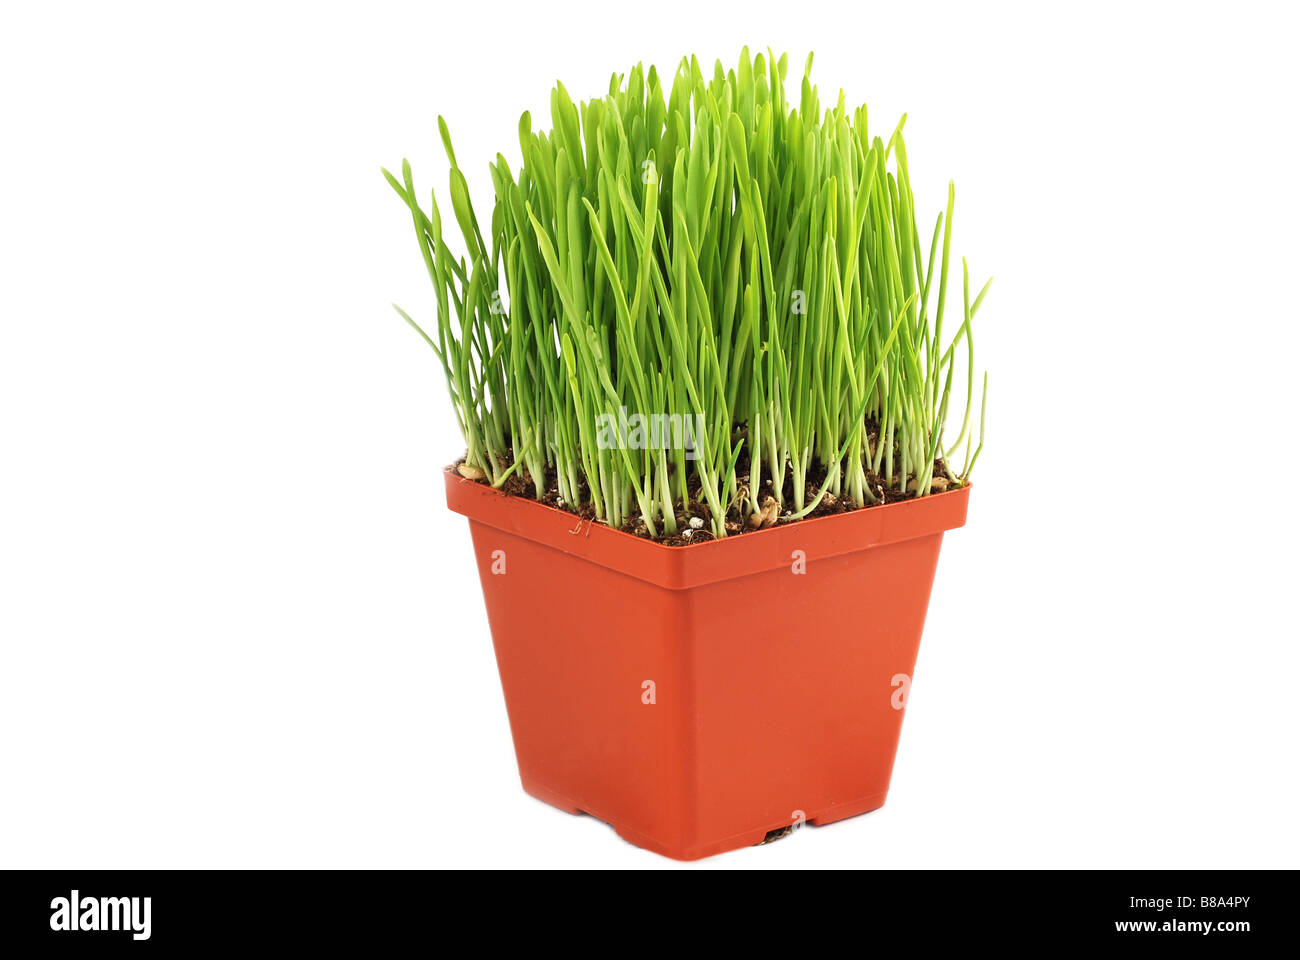 Pot With Wheat Grass Isolated On White Stock Photos Pot With Wheat